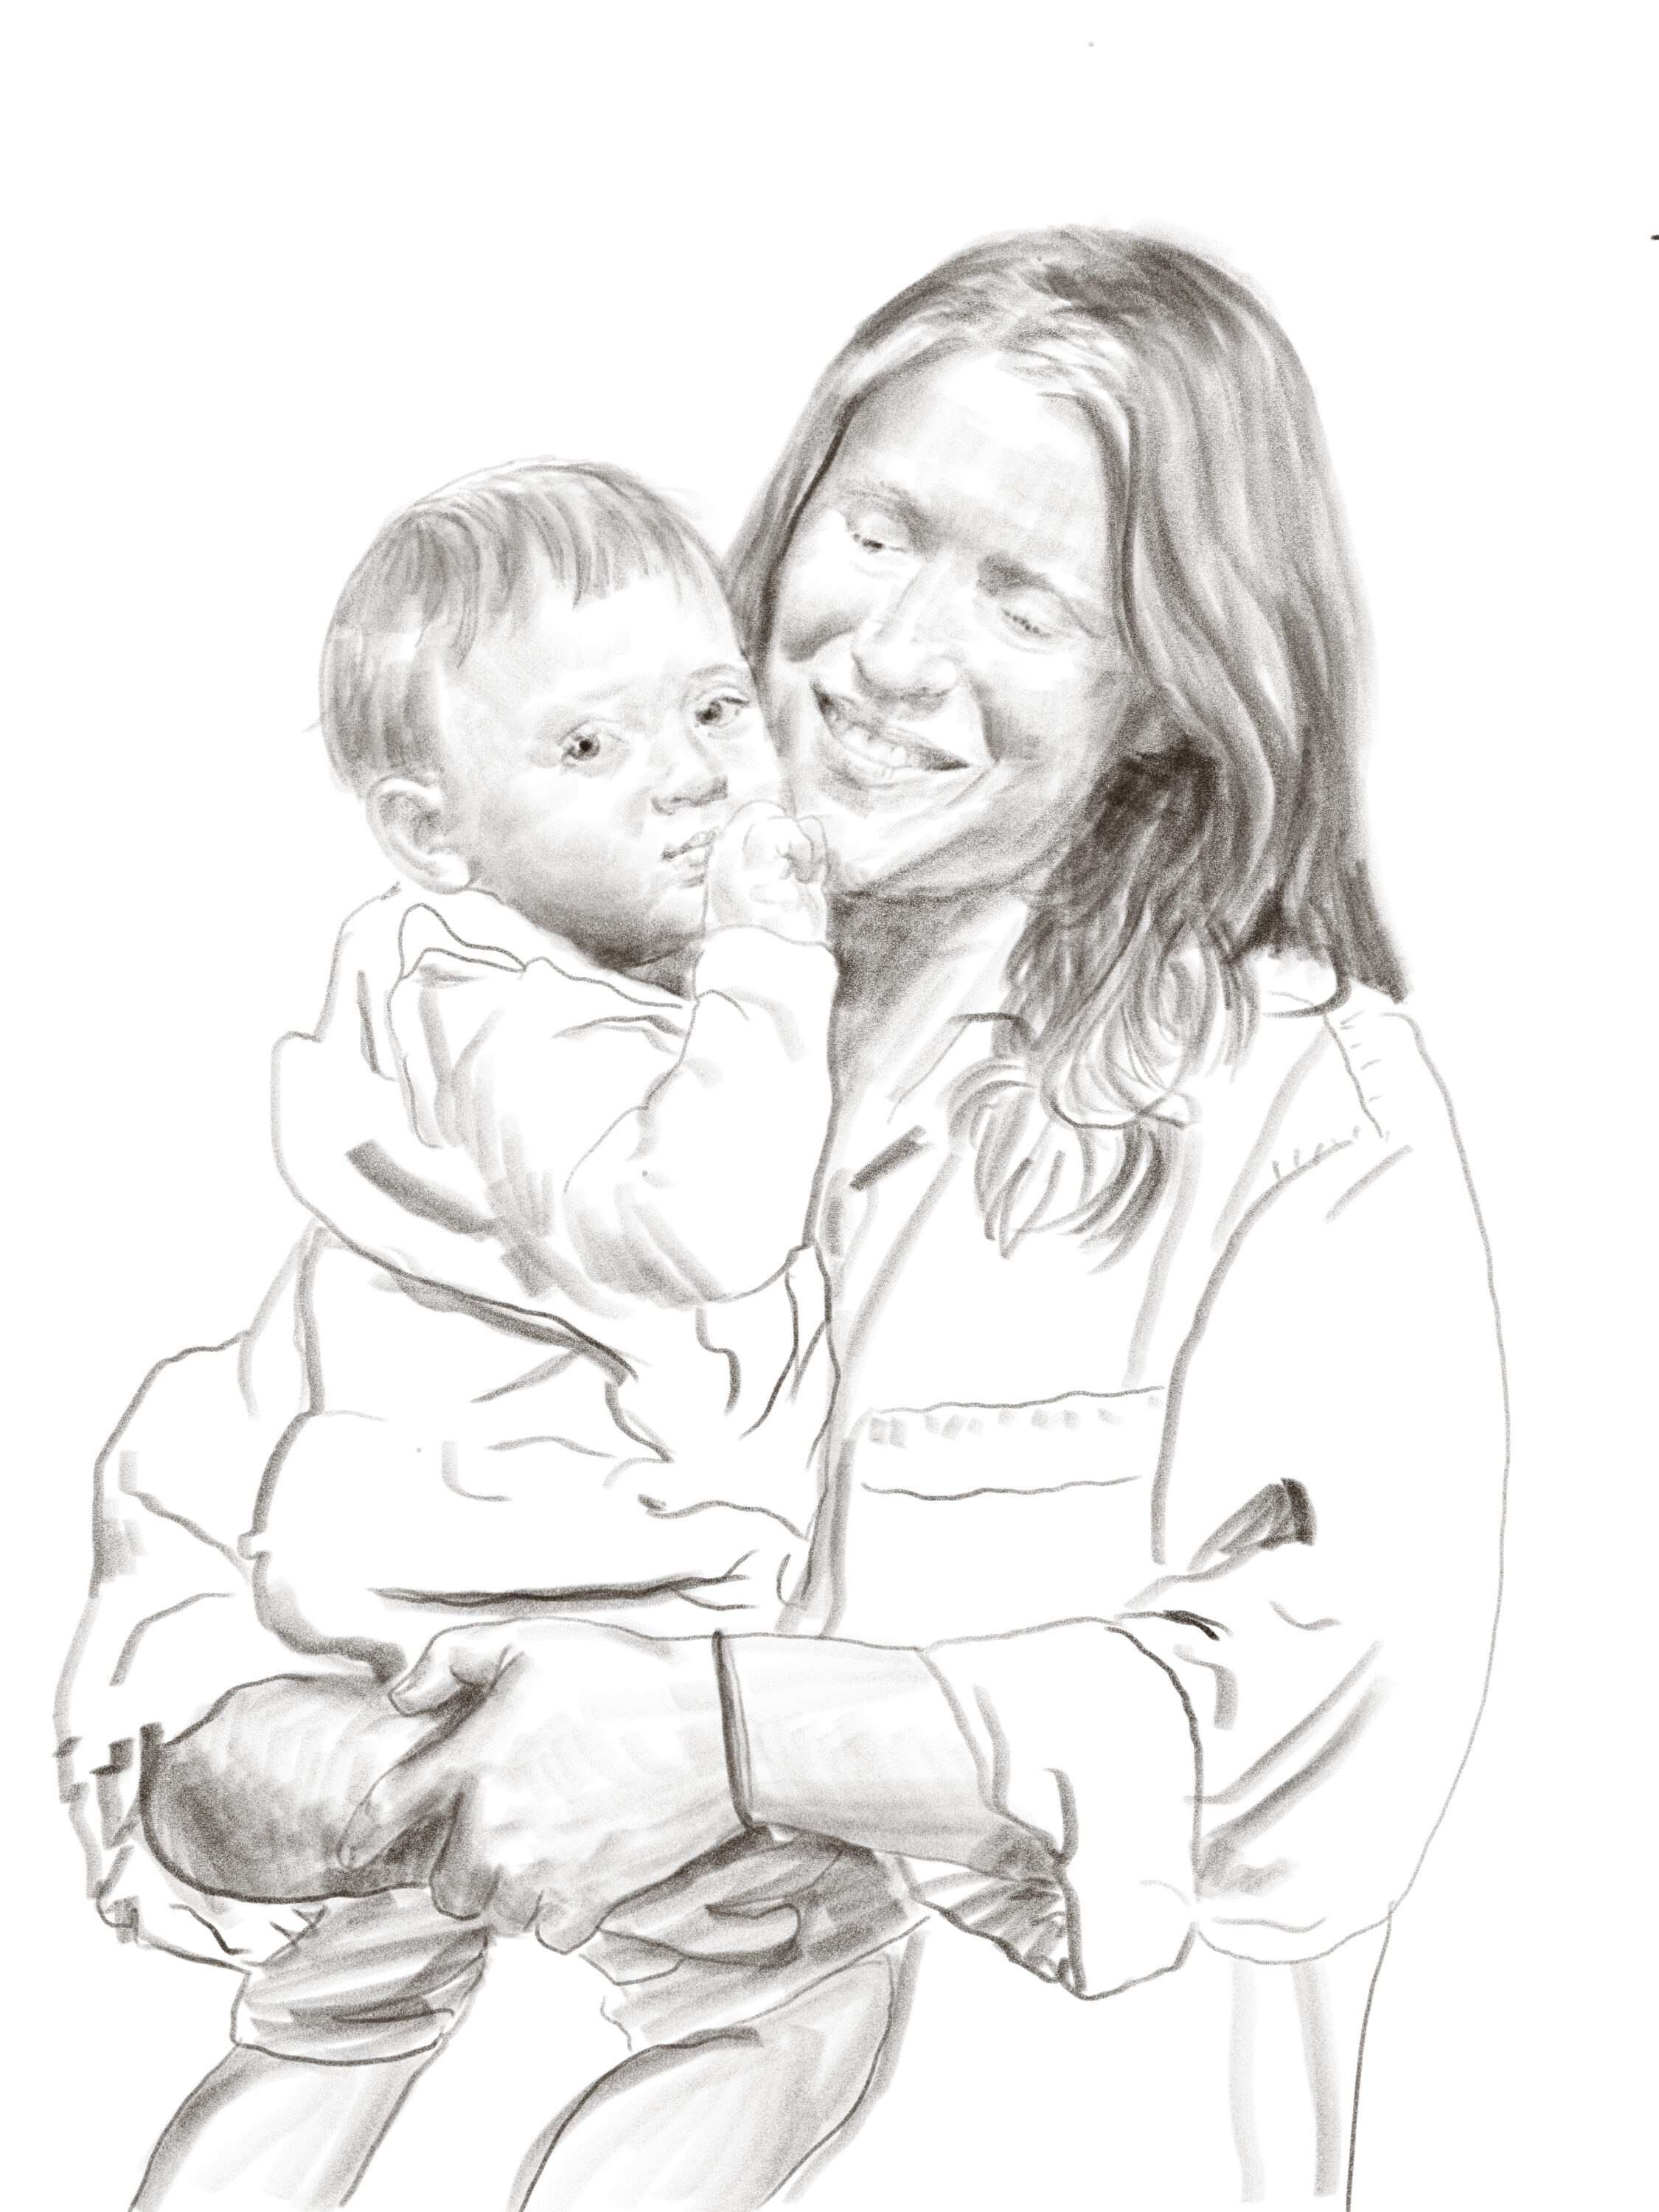 A black-and-white pencil drawing showing a smiling woman holding a young boy. She gazes at him lovingly as he stares towards the viewer with his finger in his mouth.